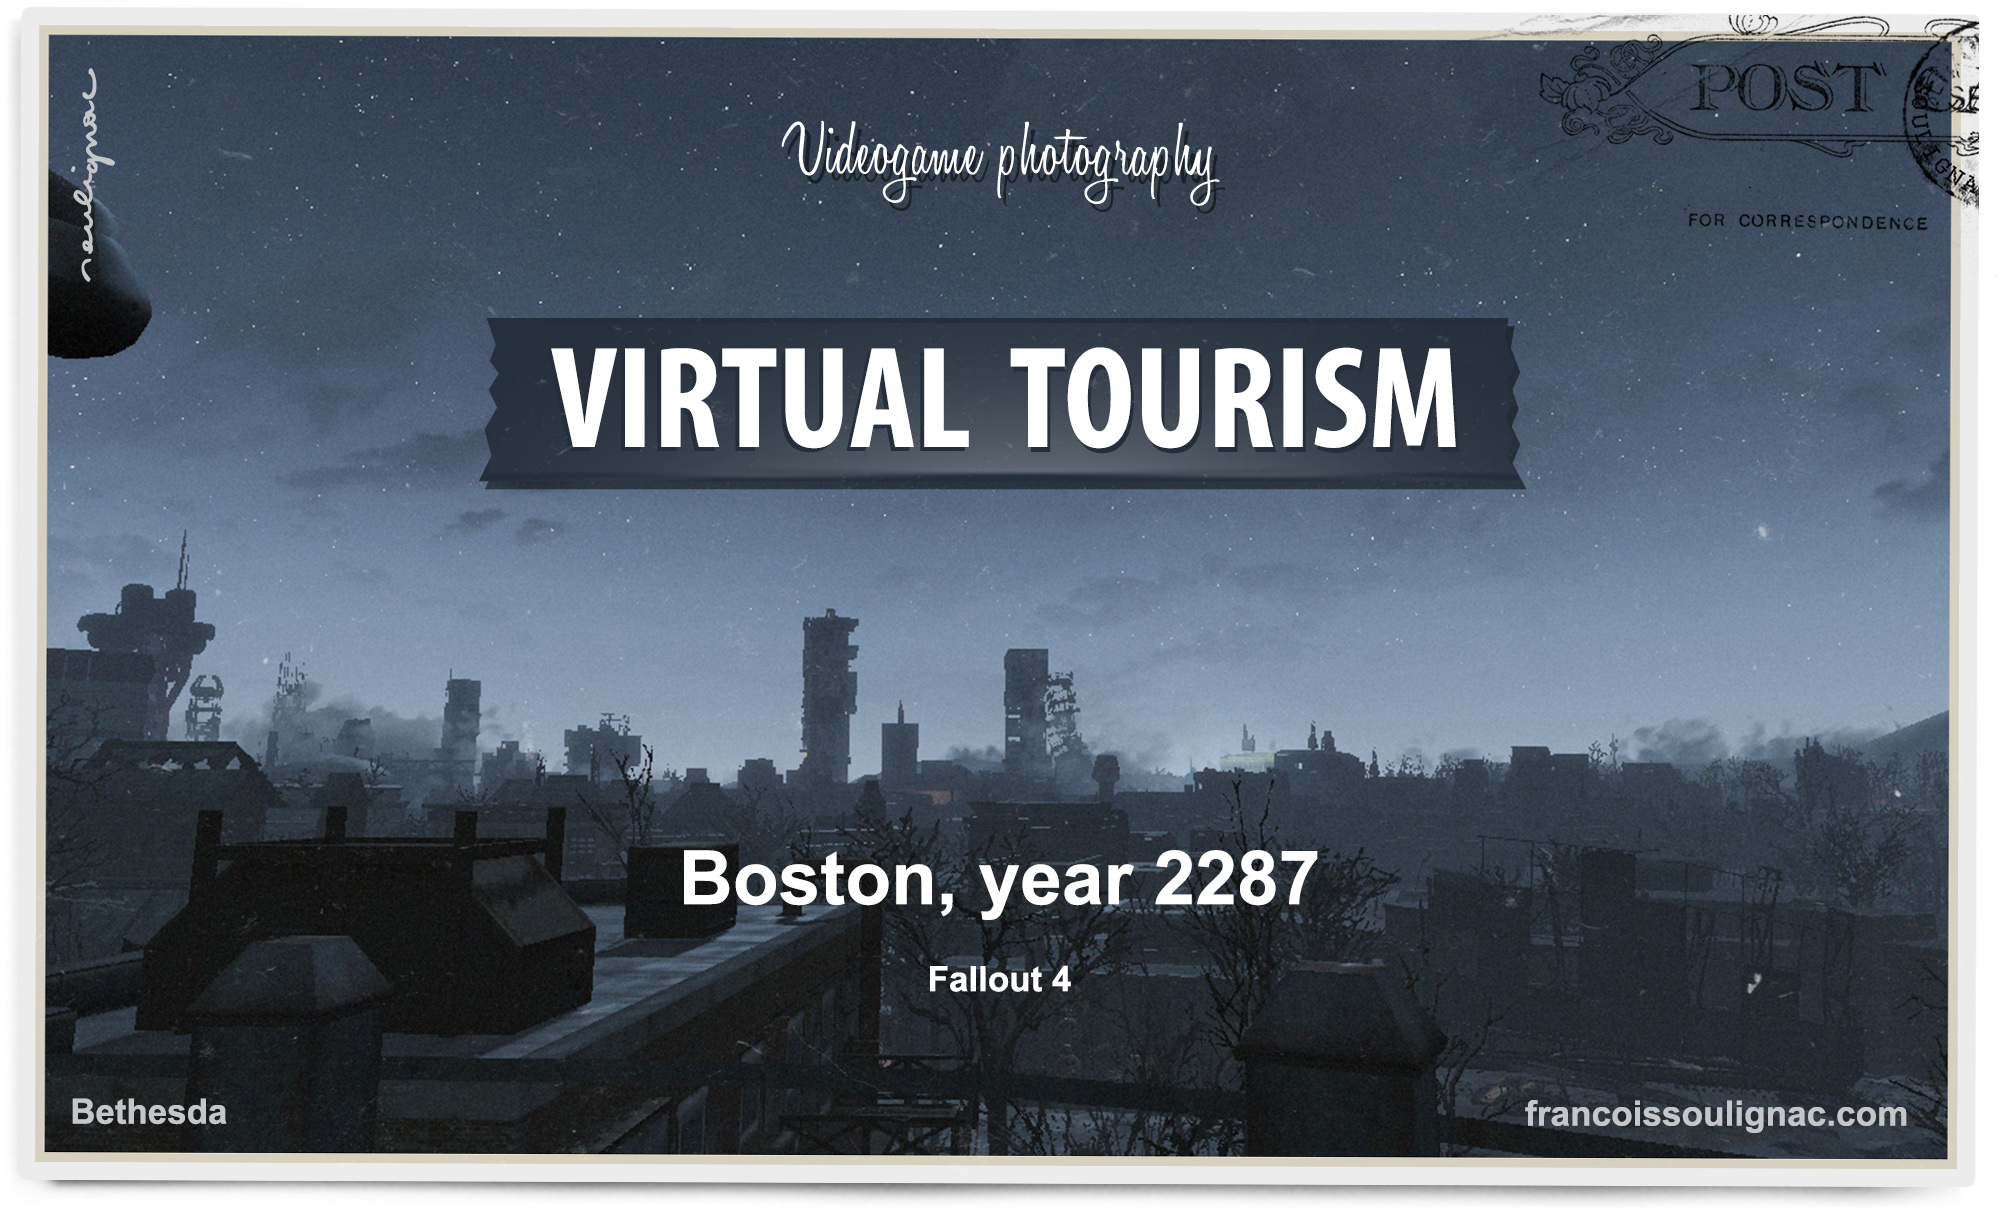 Virtual Tourism in Boston - Urban exploration in Fallout 4, Vintage Postcard from virtual worlds, In-game photography - © Bethesda Softworks - François Soulignac